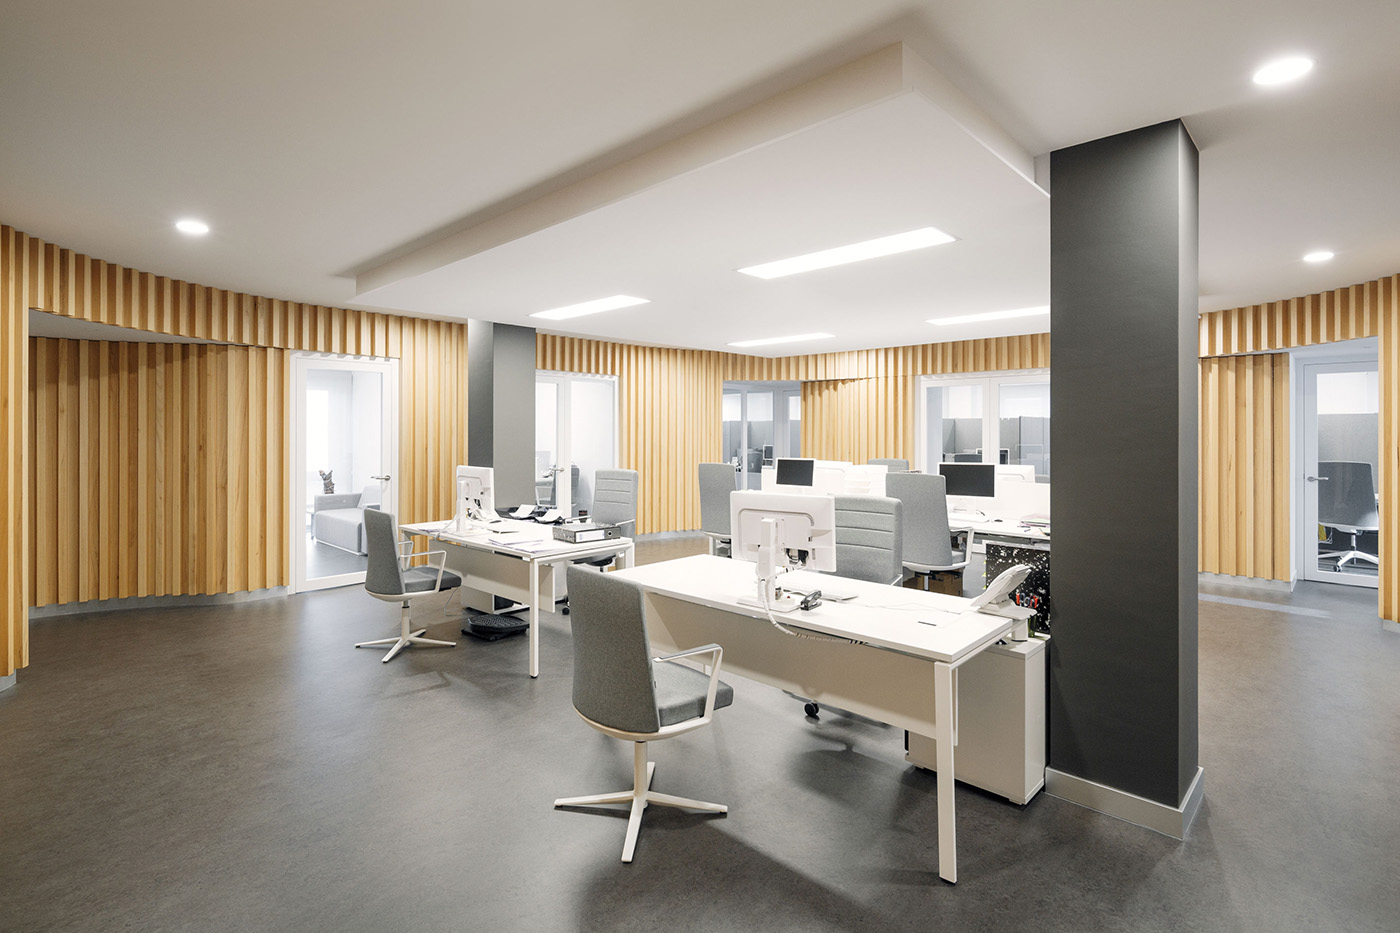 Office company with wooden walls